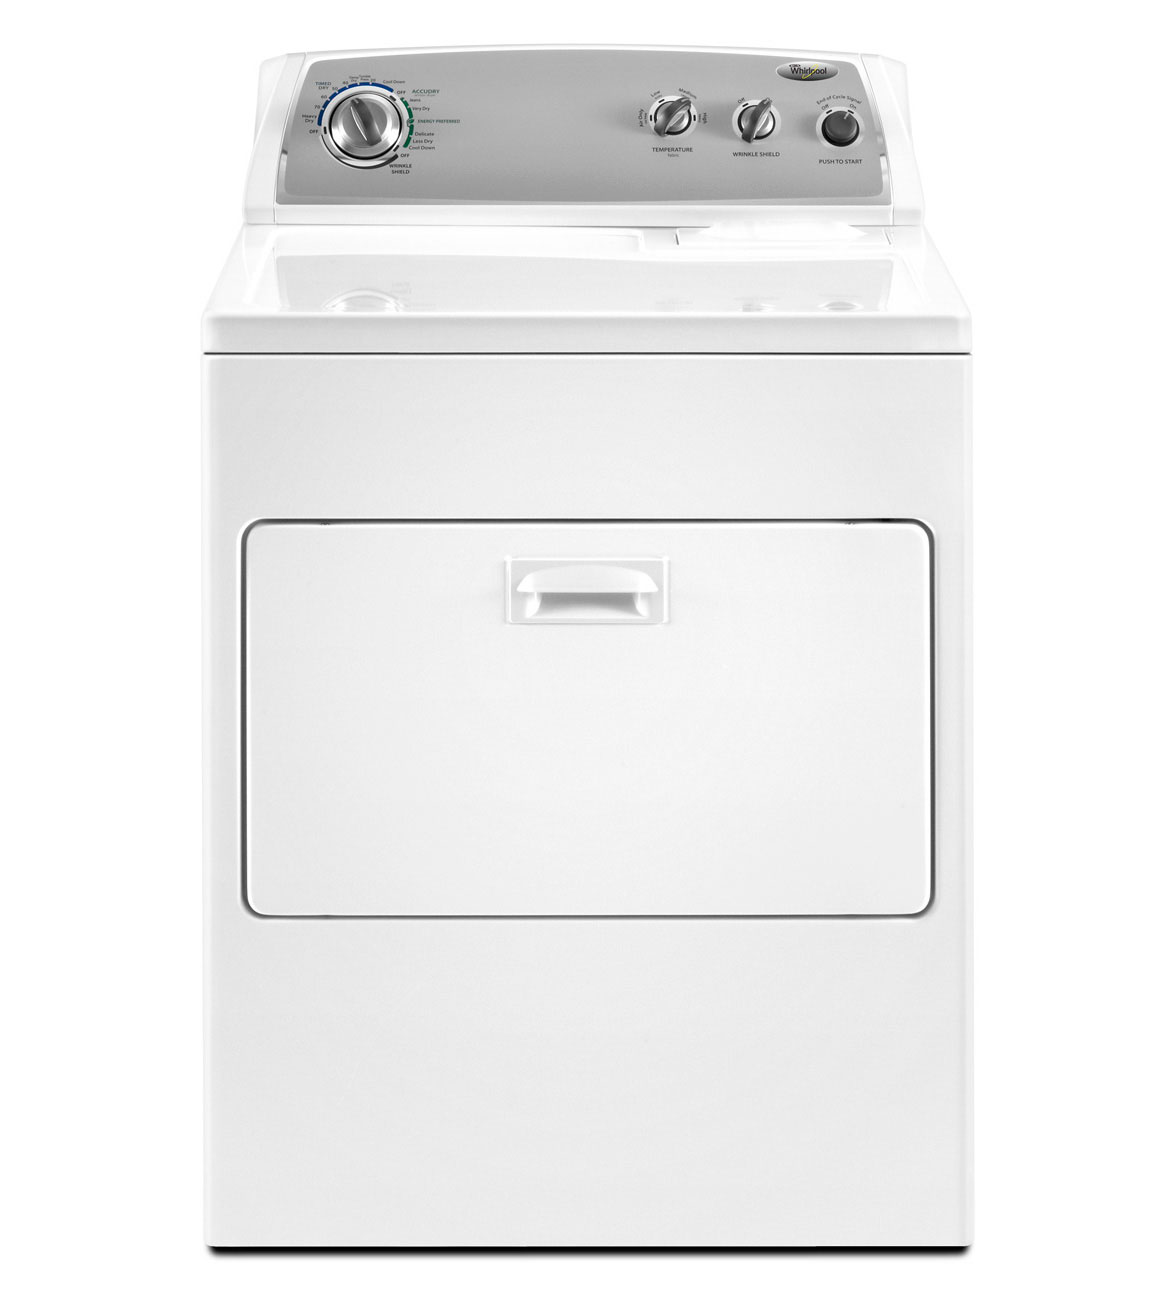 Review of Whirlpool Traditional Electric Dryer with AccuDry Drying System (Model: WED4900XW)